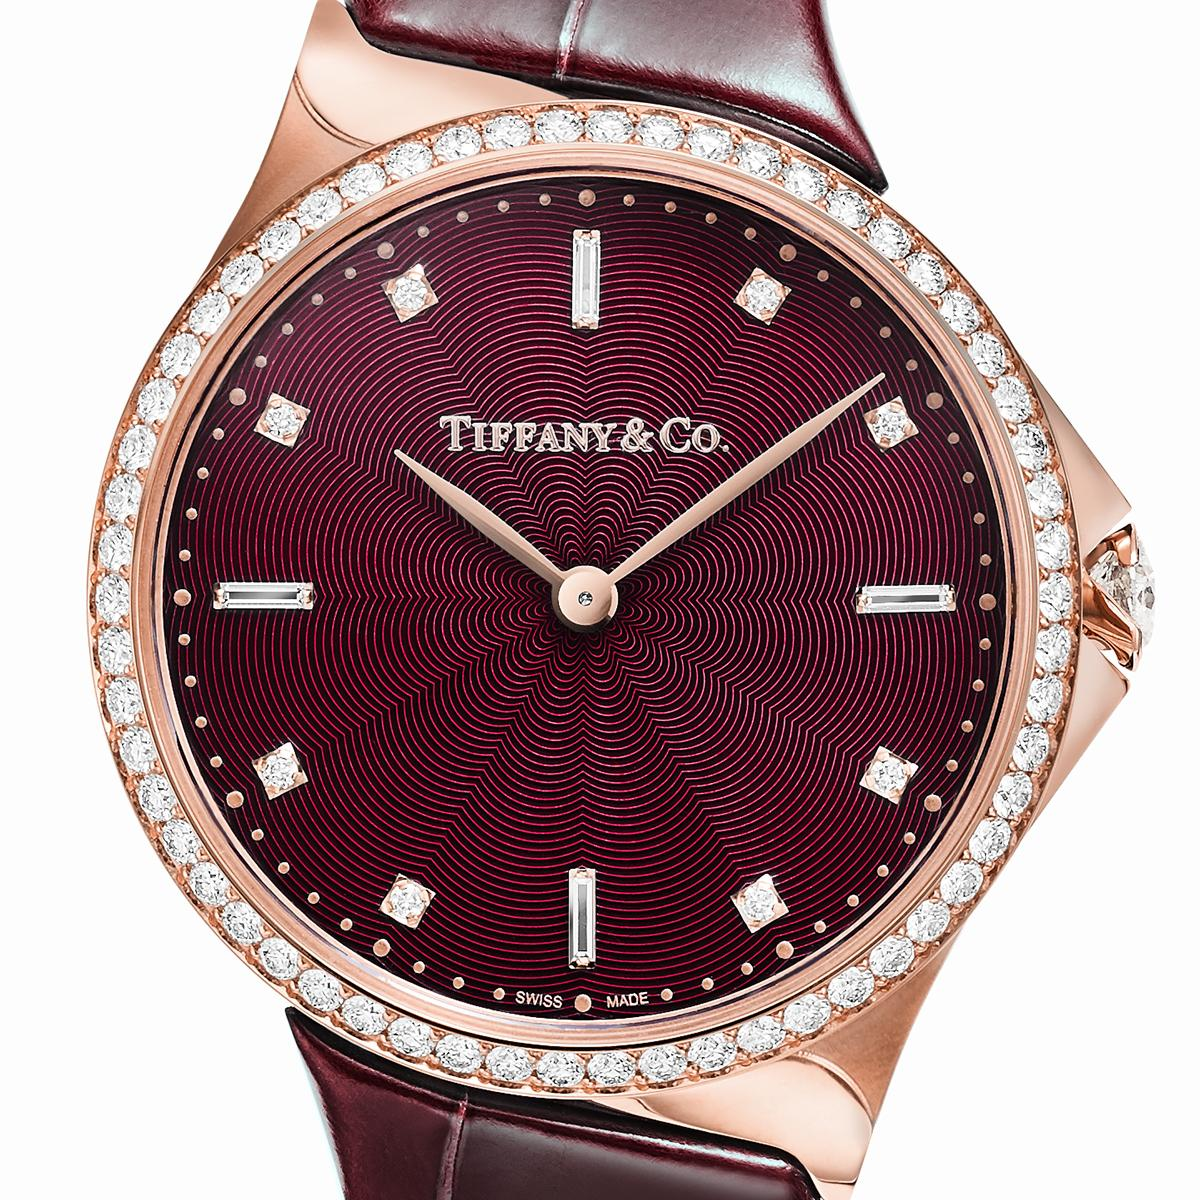 58faa93c6bf0 New Tiffany Metro watches combine Tiffany s diamond legacy with masterful  watchmaking.